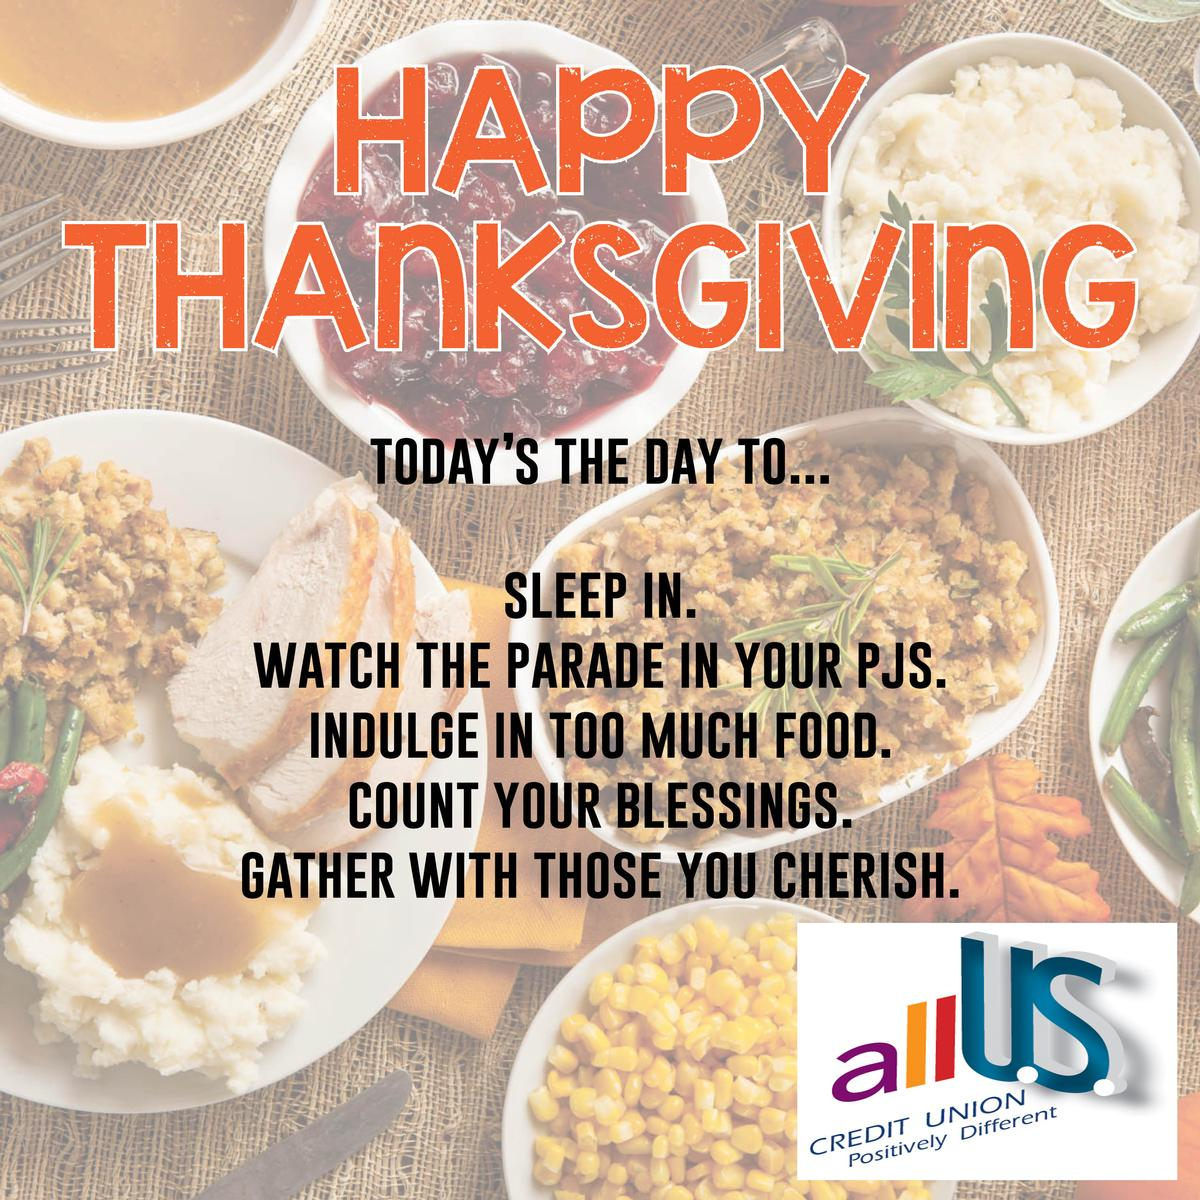 Happy Thanksgiving from allU.S. Credit Union